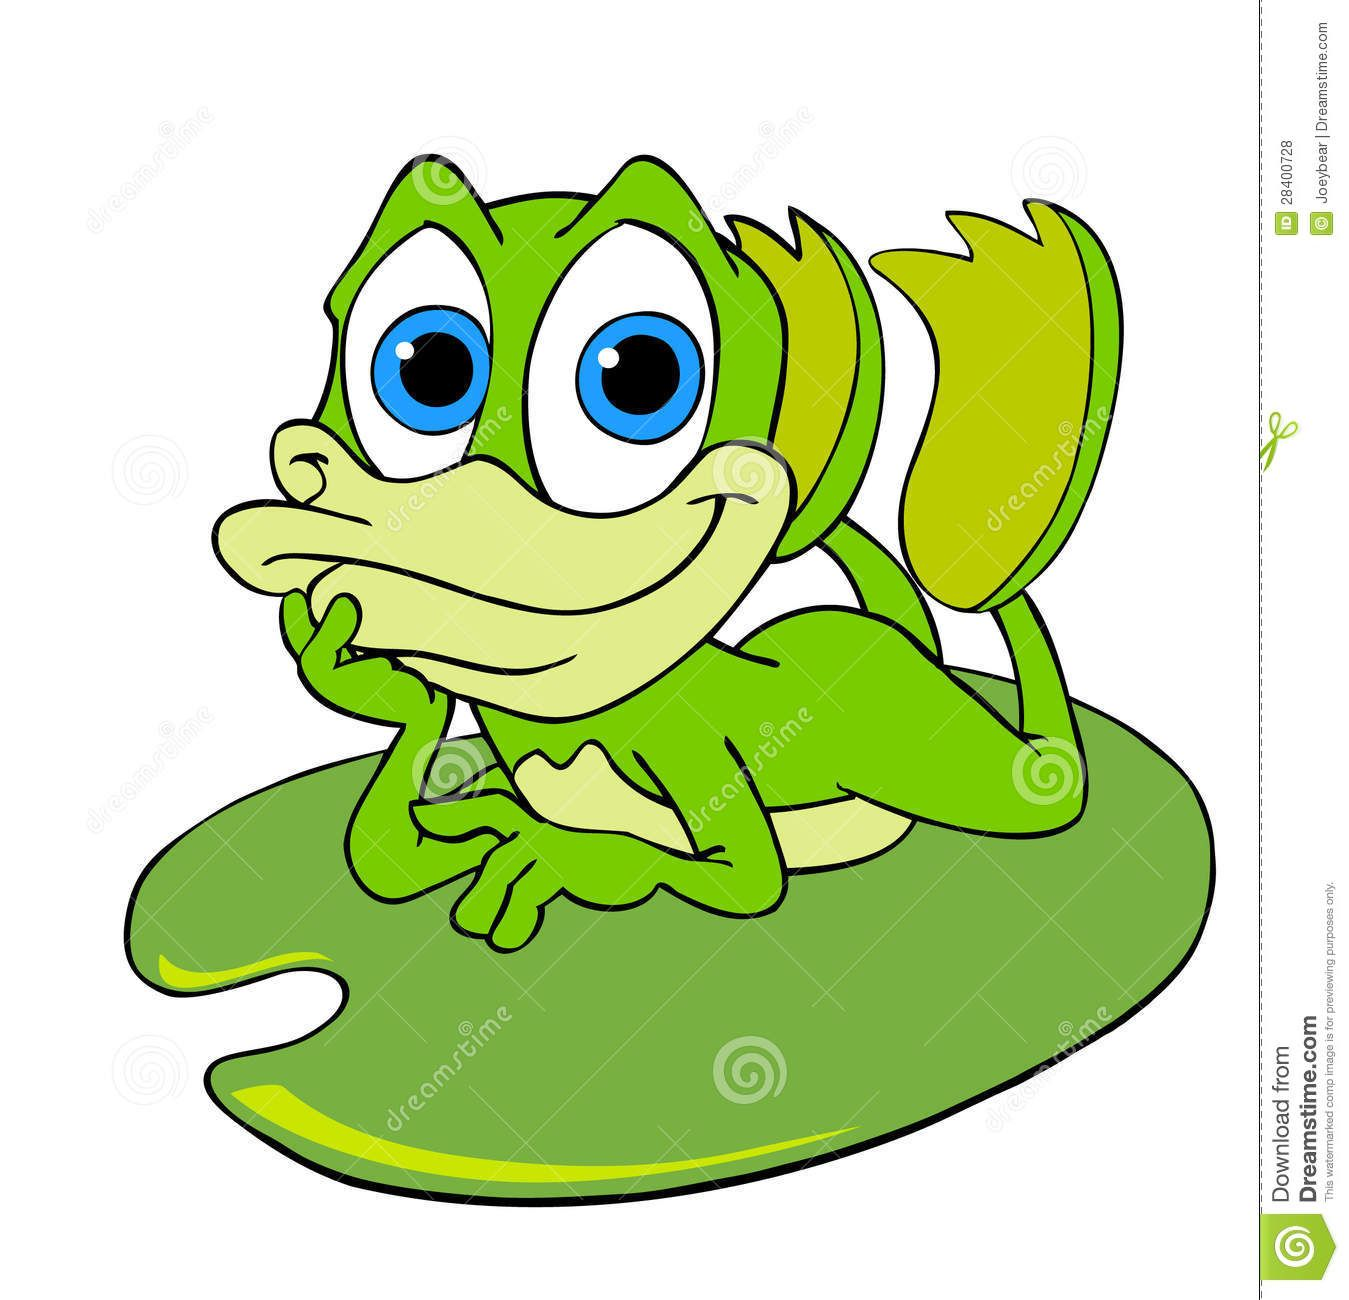 bullfrog stock illustrations vectors clipart 129 stock rh pinterest com american bullfrog clipart